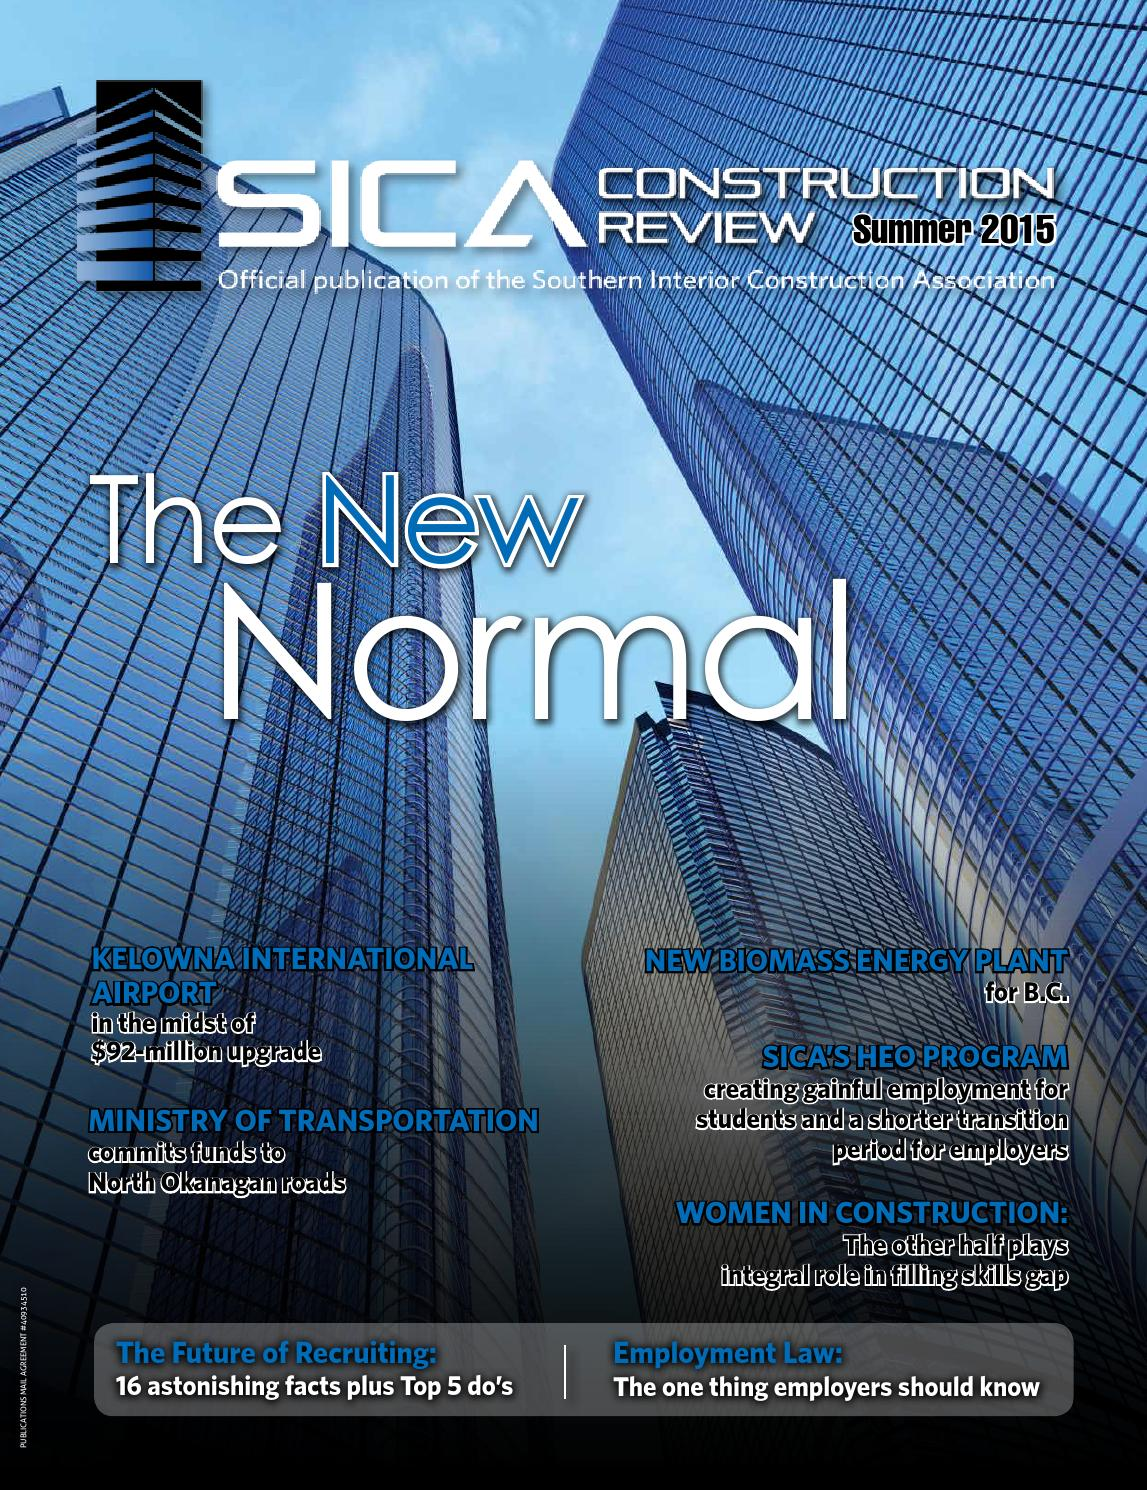 SICA Construction Review - Fall 2015 by SICAbc - issuu